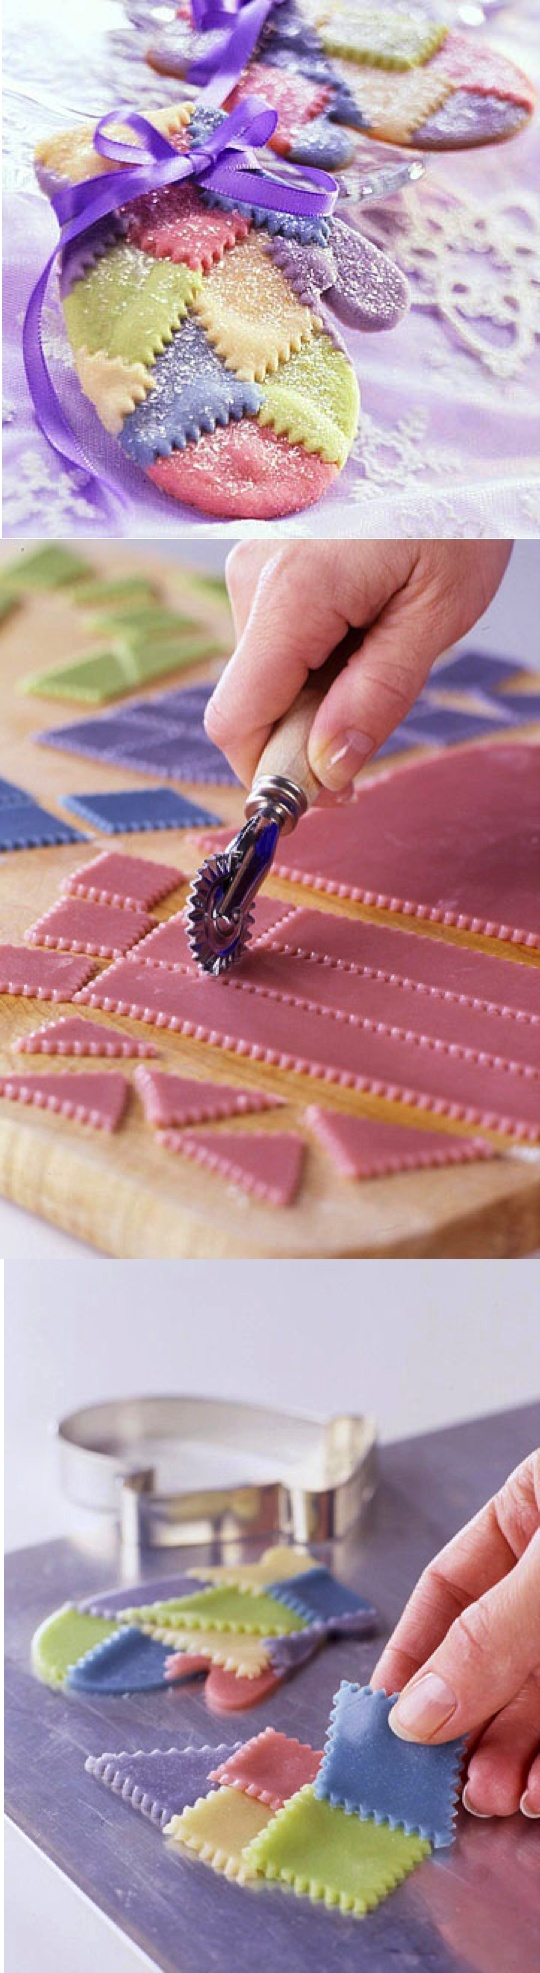 Quilted Mitten Cookies...This would also make a great craft using salt dough and some coloring